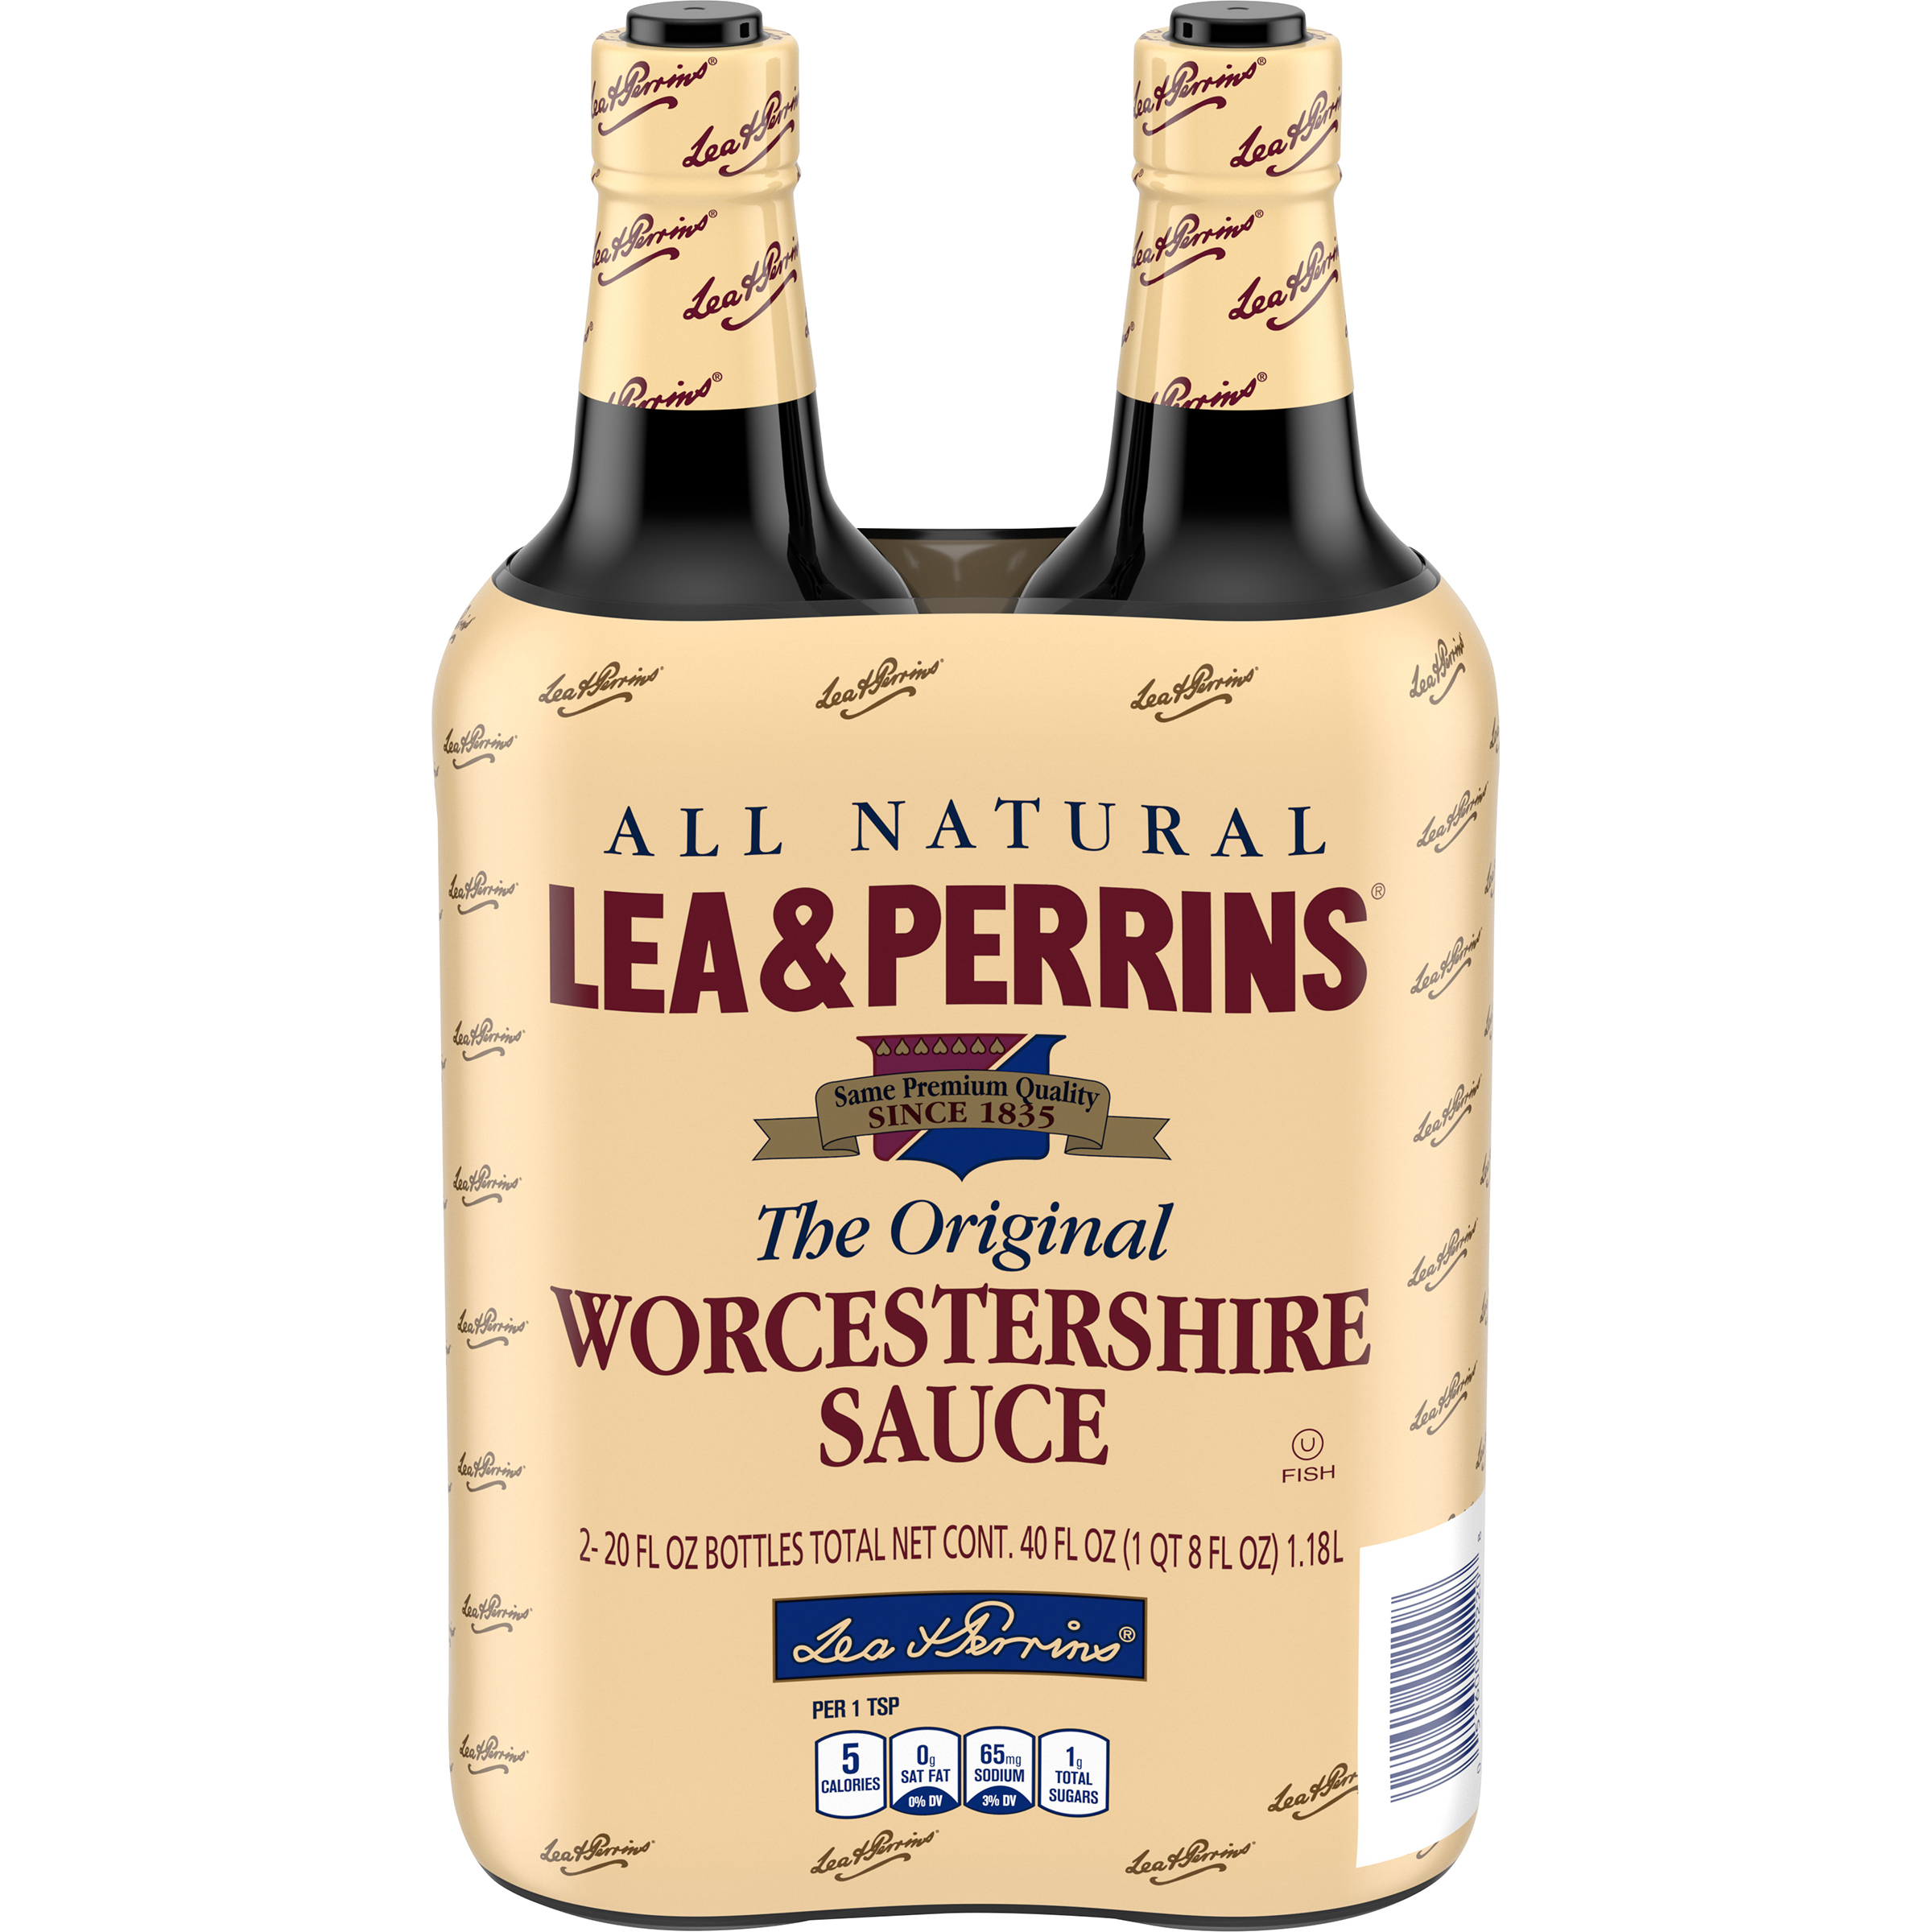 LEA & PERRINS The Original 20 Oz Worcestershire Sauce 2 PK GLASS BOTTLES image